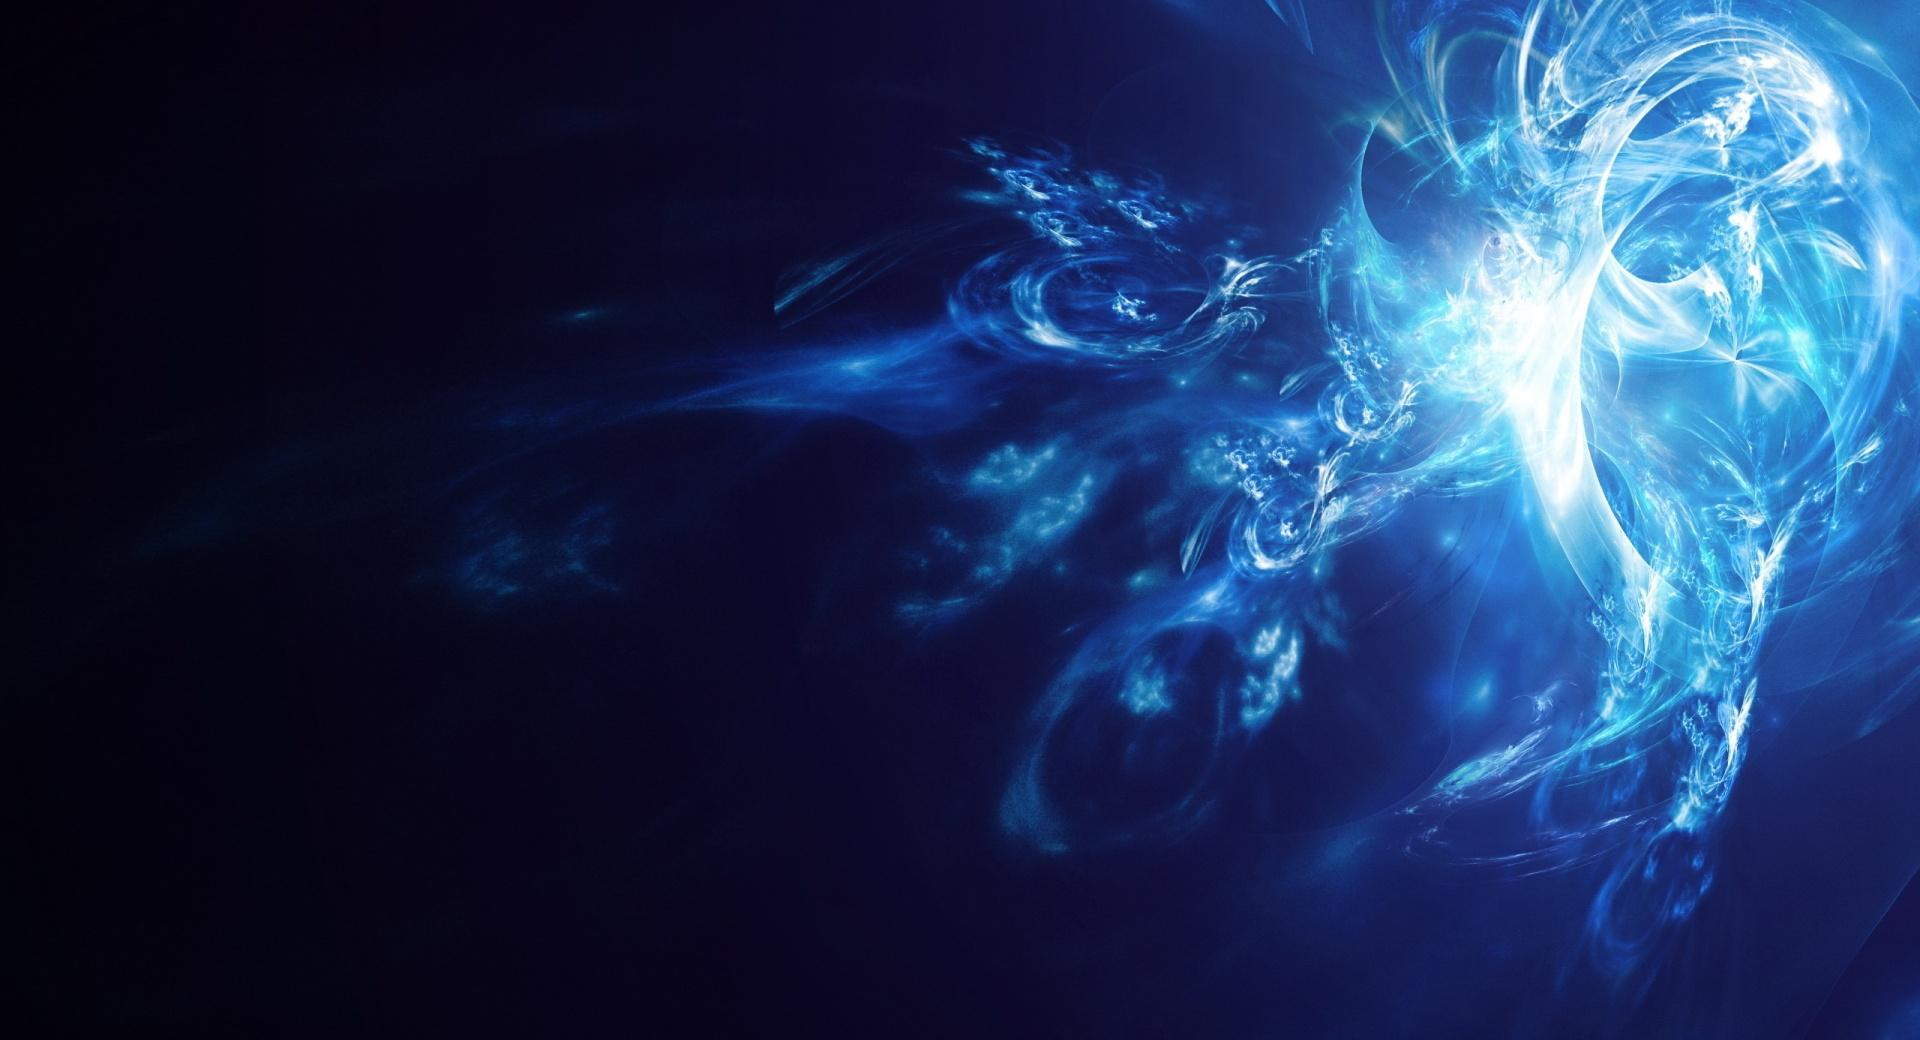 Blue Smoke wallpapers HD quality